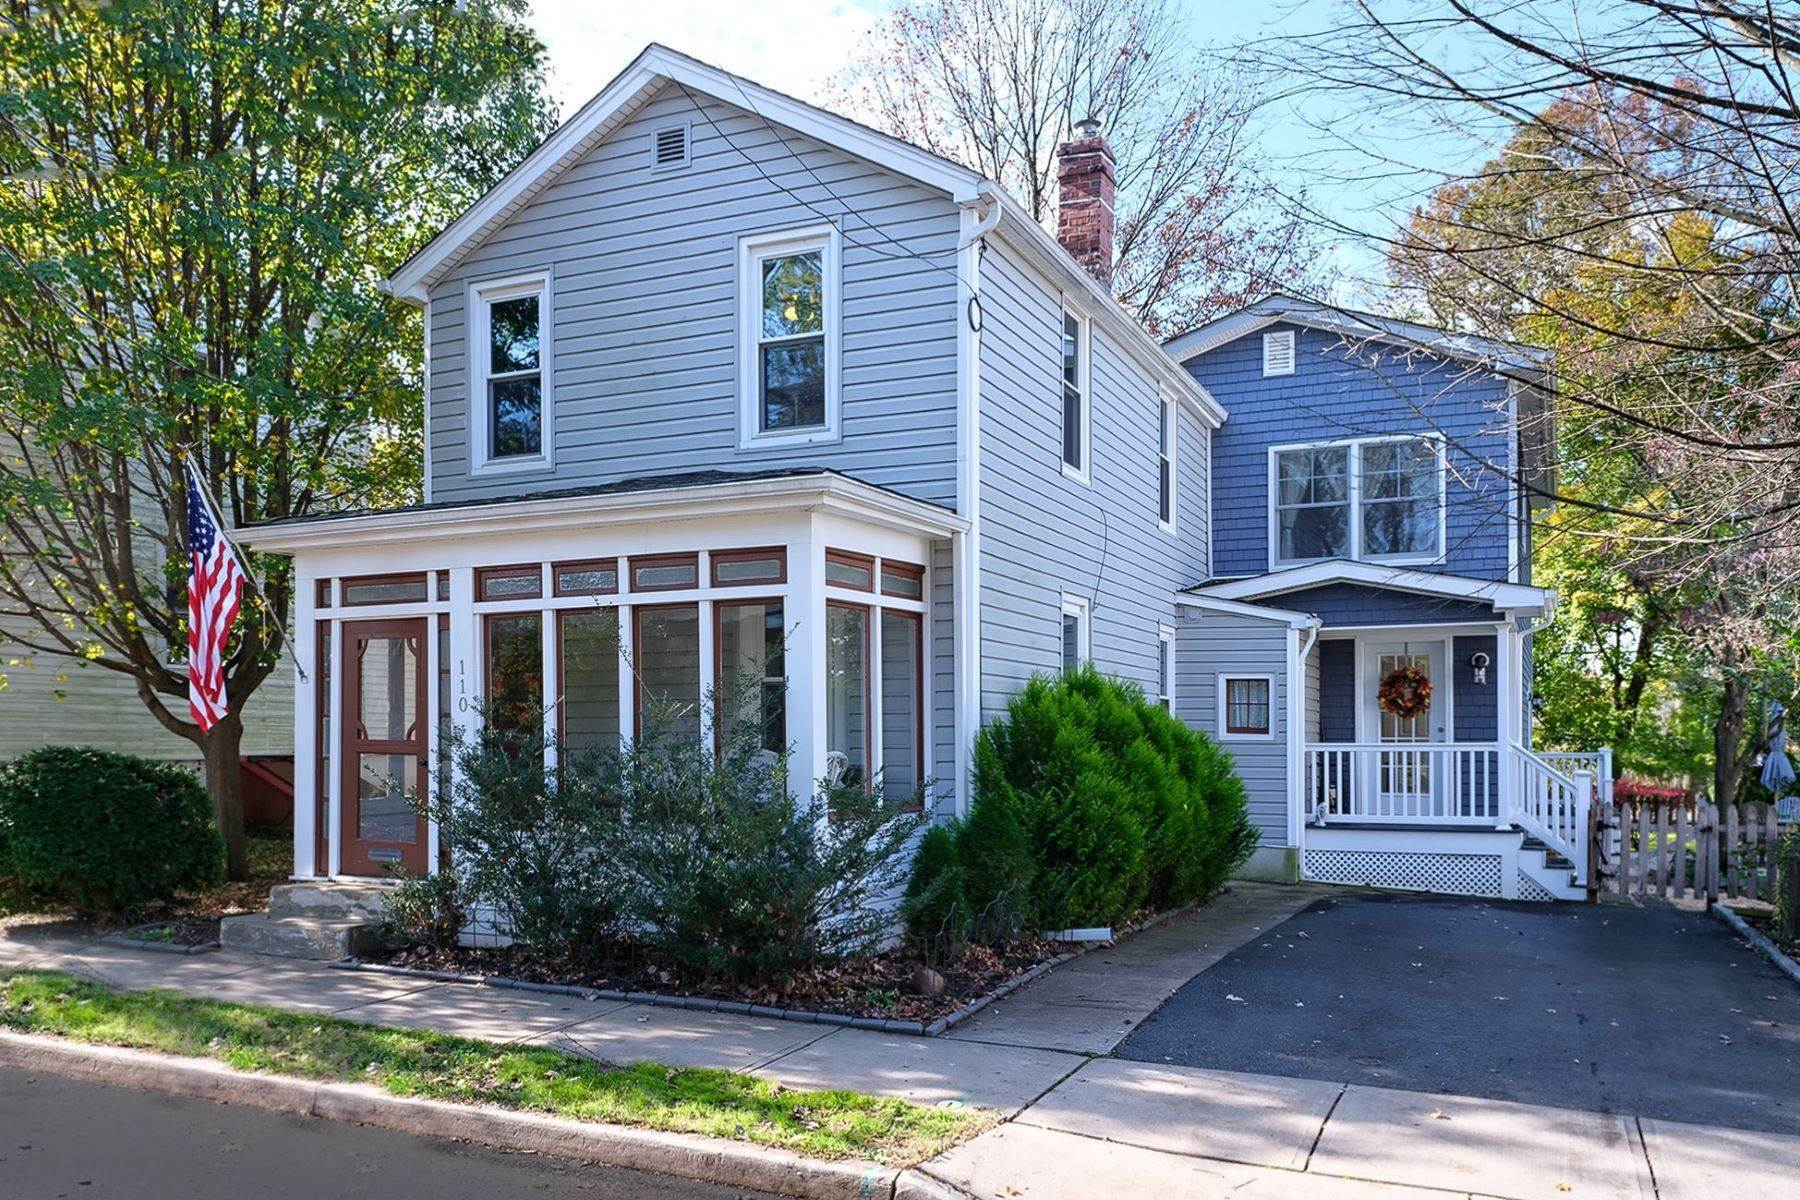 Single Family Homes for Sale at A Must-See And Much Larger Than It Looks! 110 Crawley Avenue, Pennington, New Jersey 08534 United States